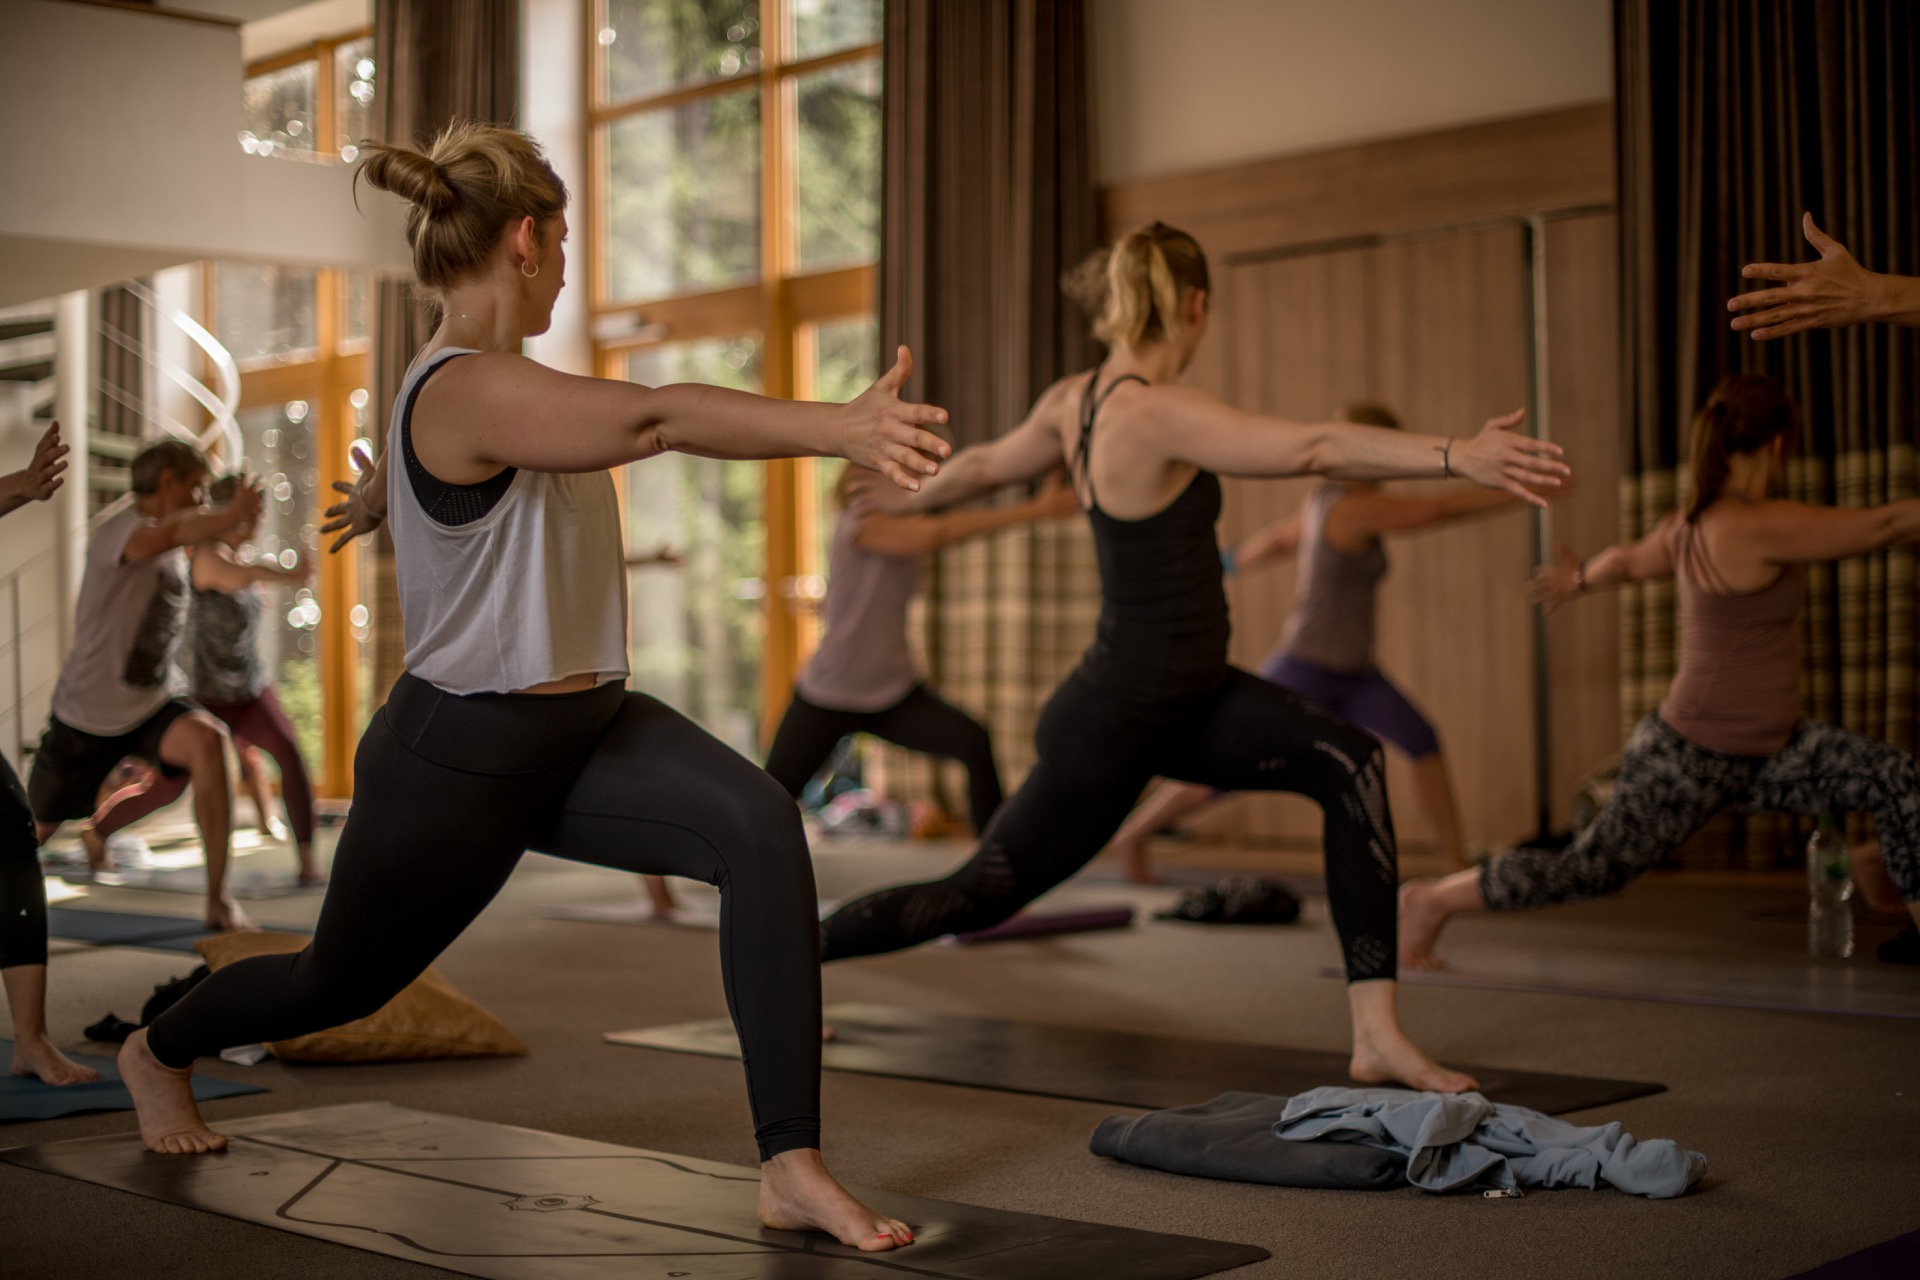 Hie-Kim-Friends-2019-Yoga-Retreat-Alina-Matis-Photography-080 - Hie Kim Yoga - Yoga Retreat - Yoga Workshops und Reisen